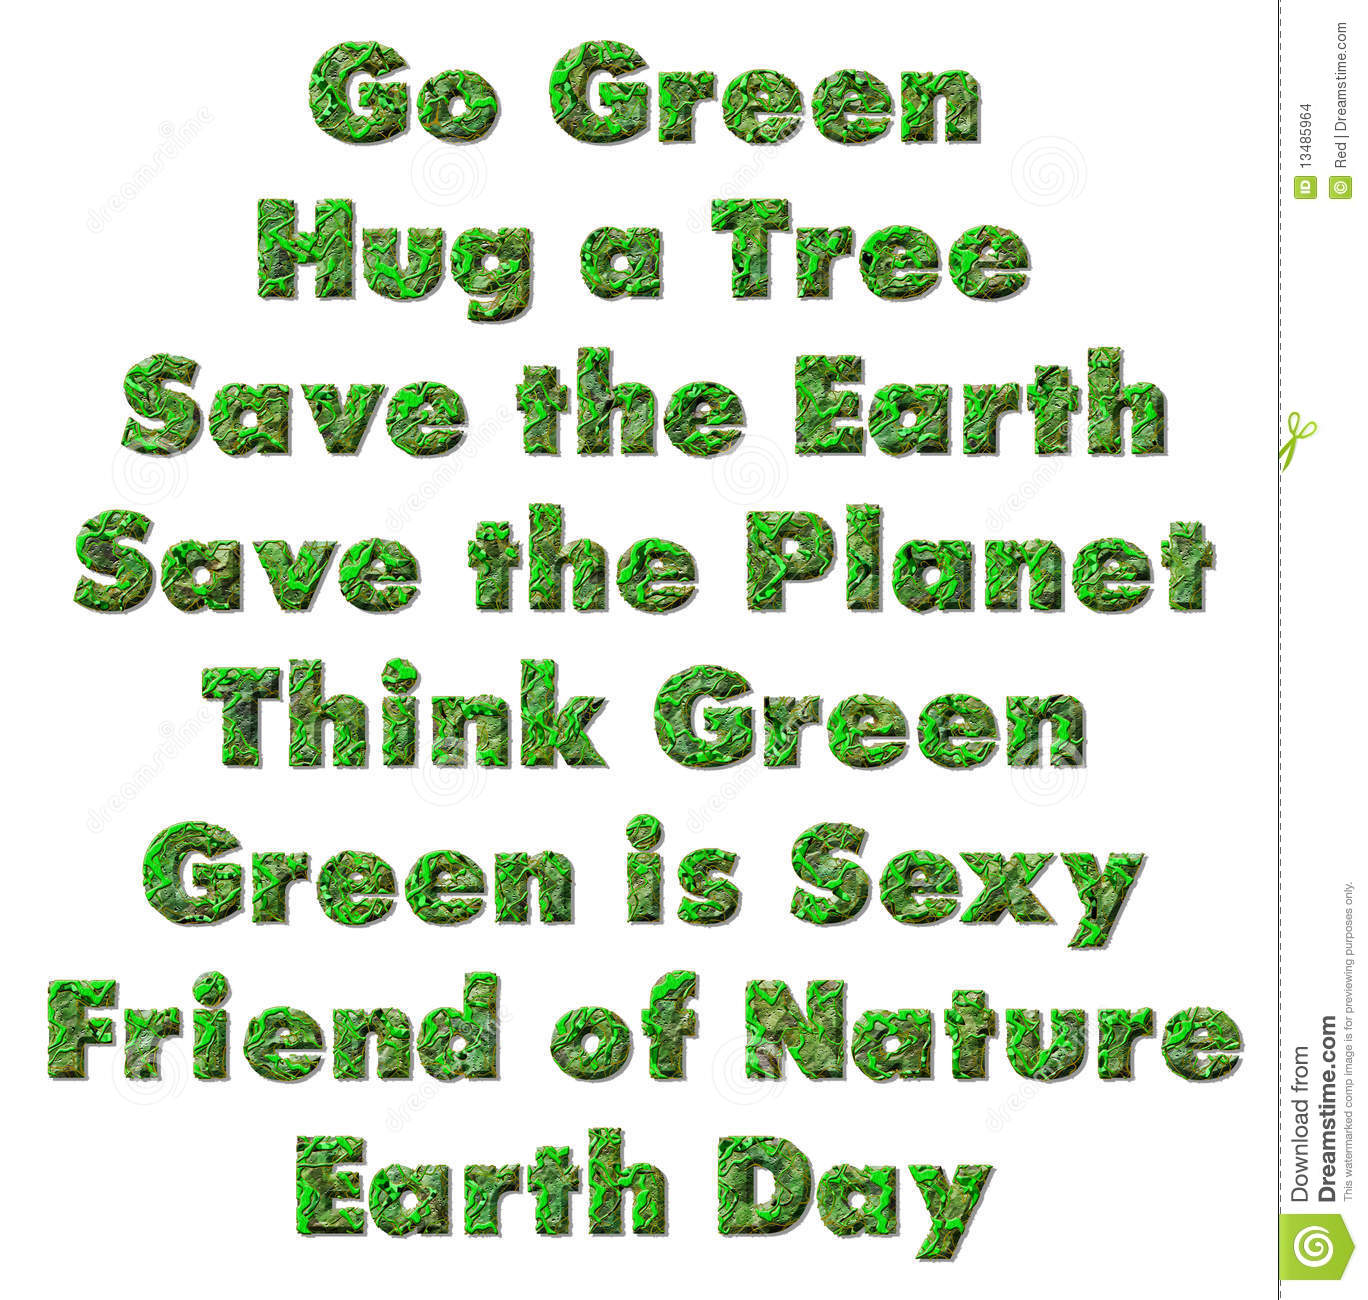 go green environment essay When you write a five page essay over a tiny ass poem essay for uf number our days barbara meyerhoff essay writer brown plme essays worked hard gagneten mercedes analysis essay, essay on my dream destination disneyland comparative essay on cats and dogs personal integrity essay in english human rights essay writing year 3.